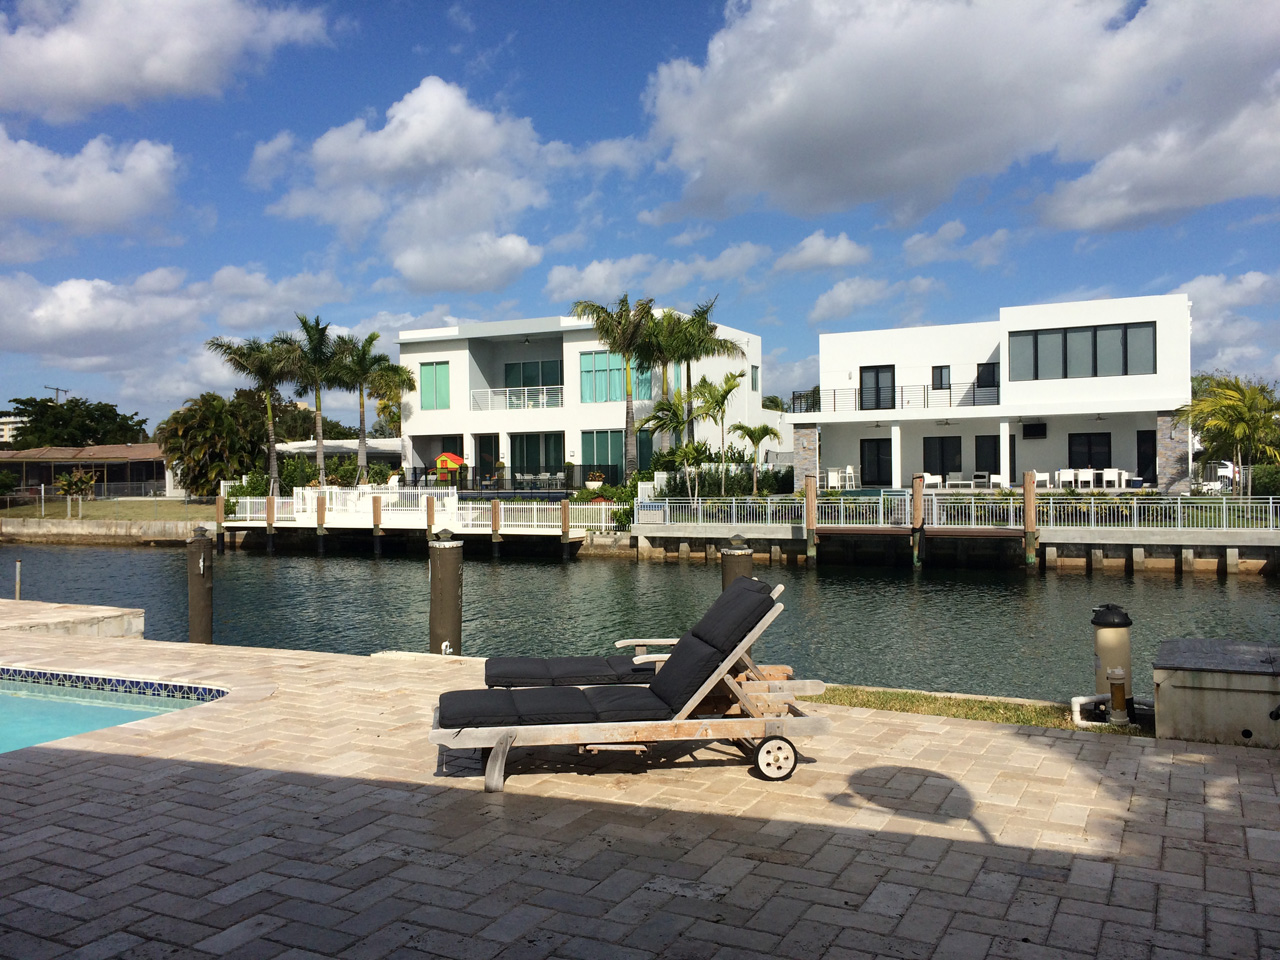 View from the pool in Miami Luxury home for sale. Keystone Point Waterfront Villa For Sale